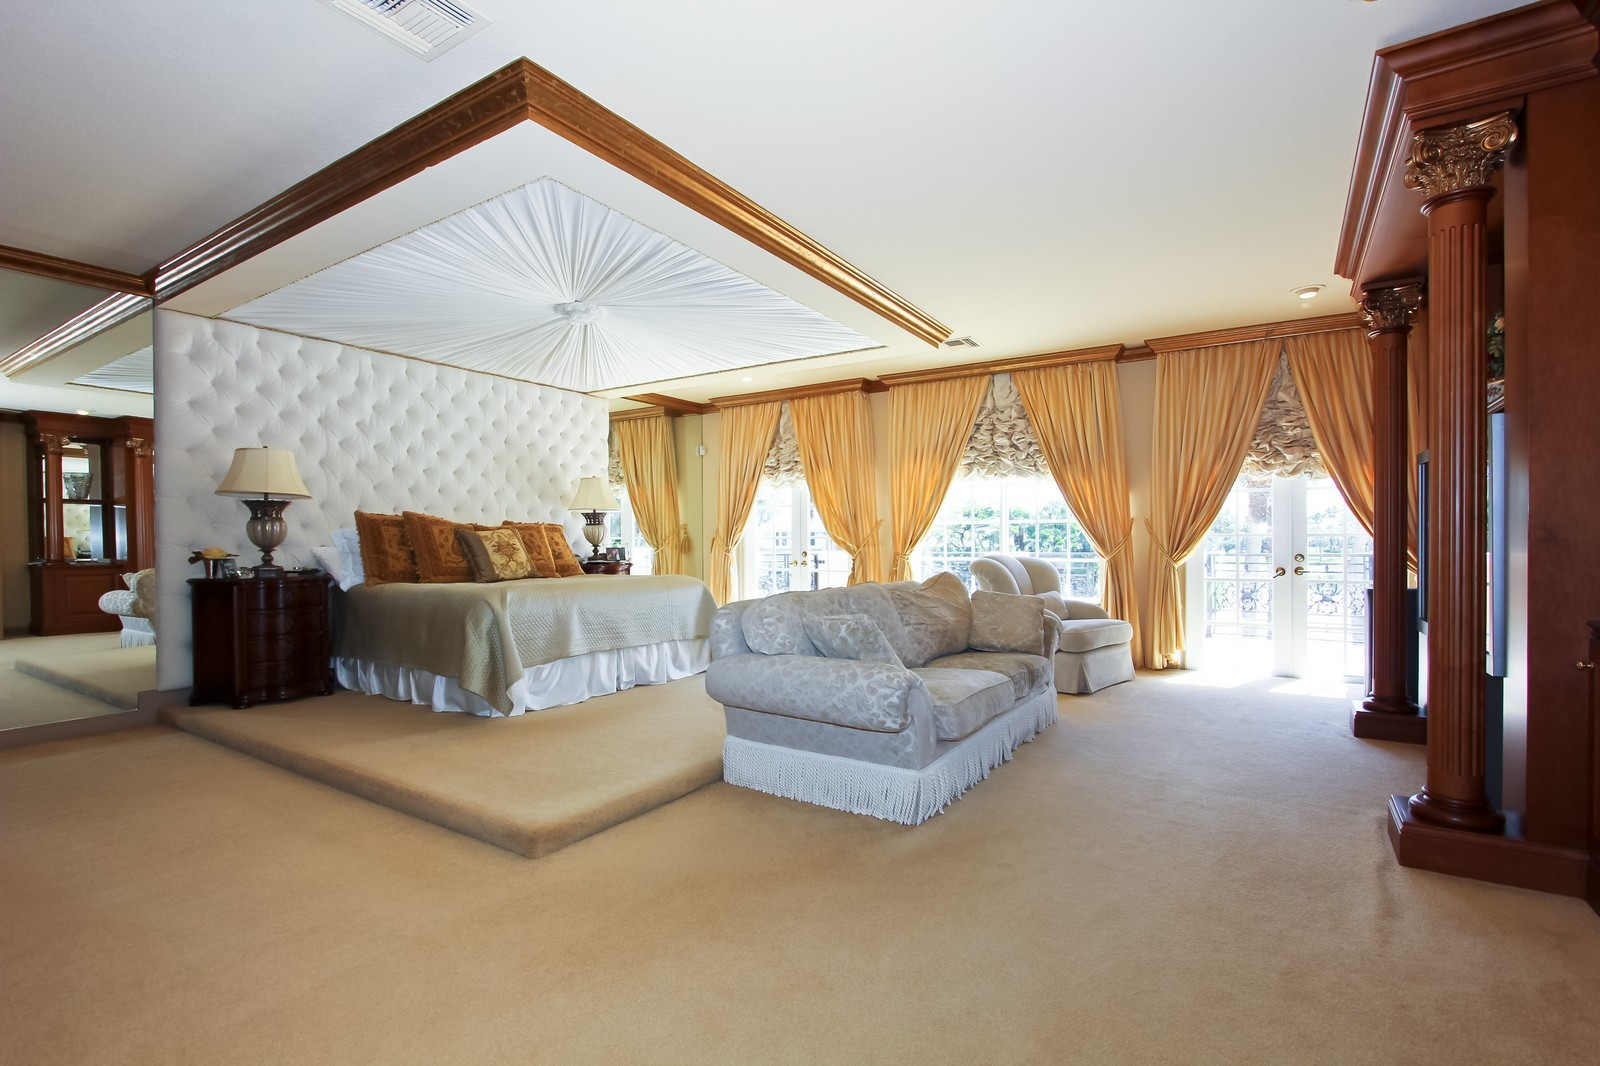 Real Estate Photography - 7015 Ayrshire Ln, Boca Raton, FL, 33496 - Master Bedroom